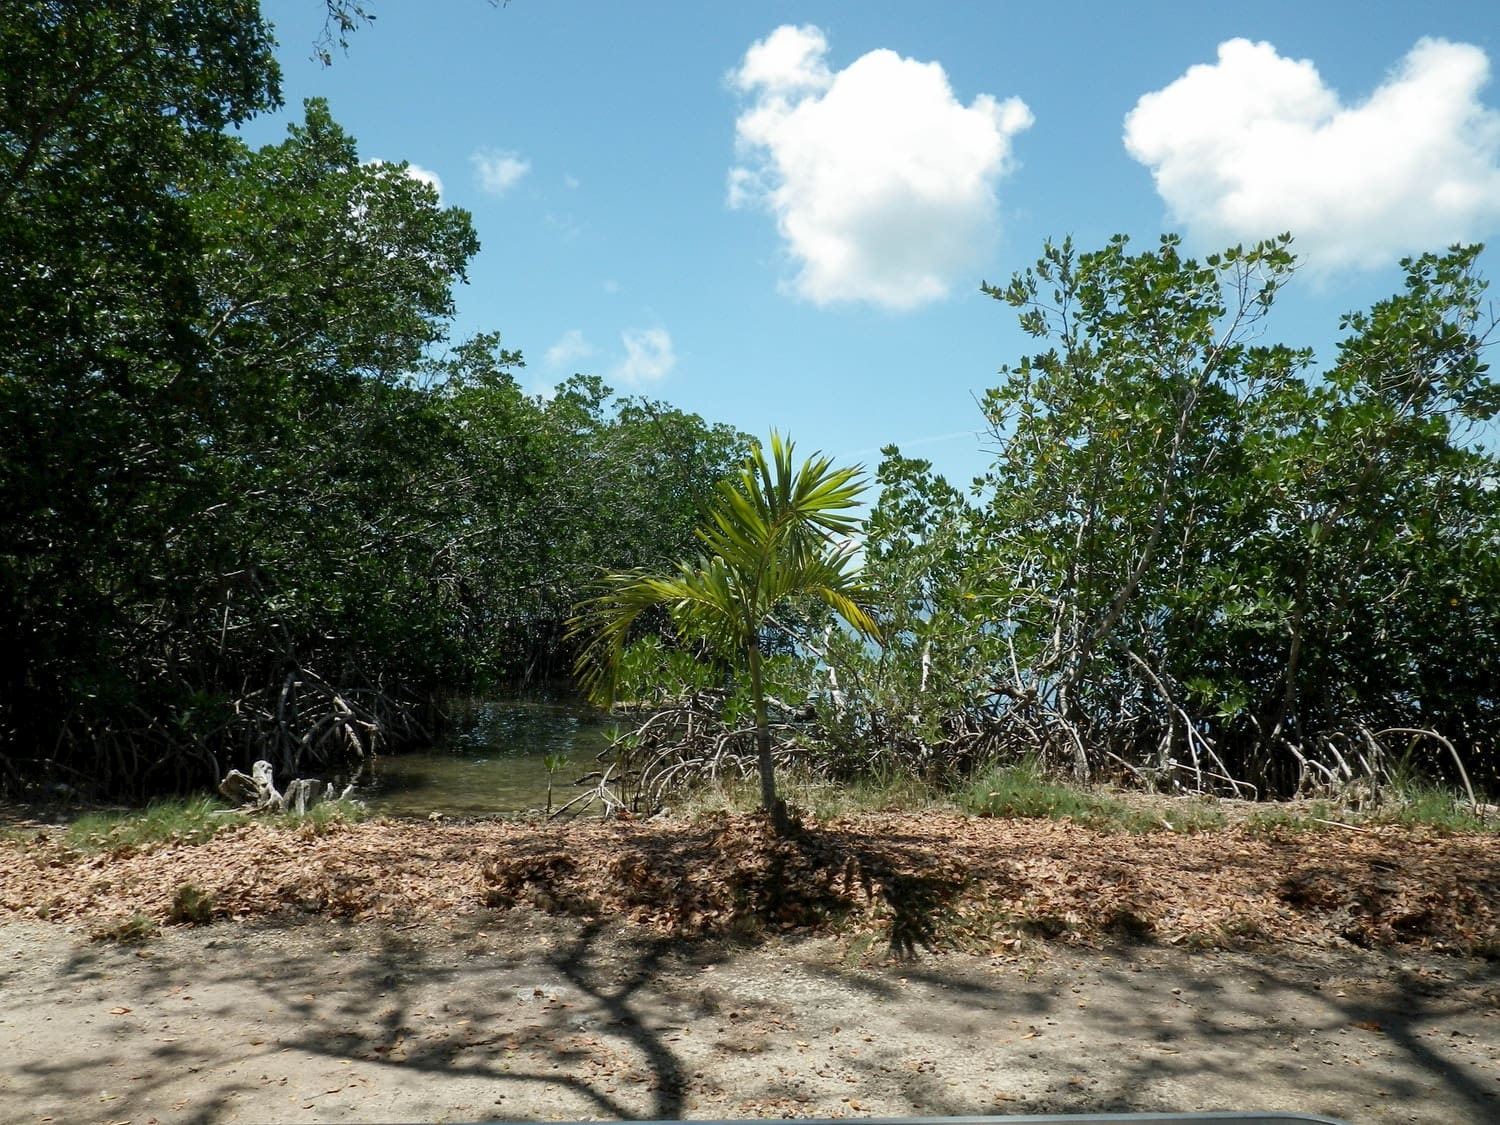 Mangroves and palm vegetation in the Florida KEys.